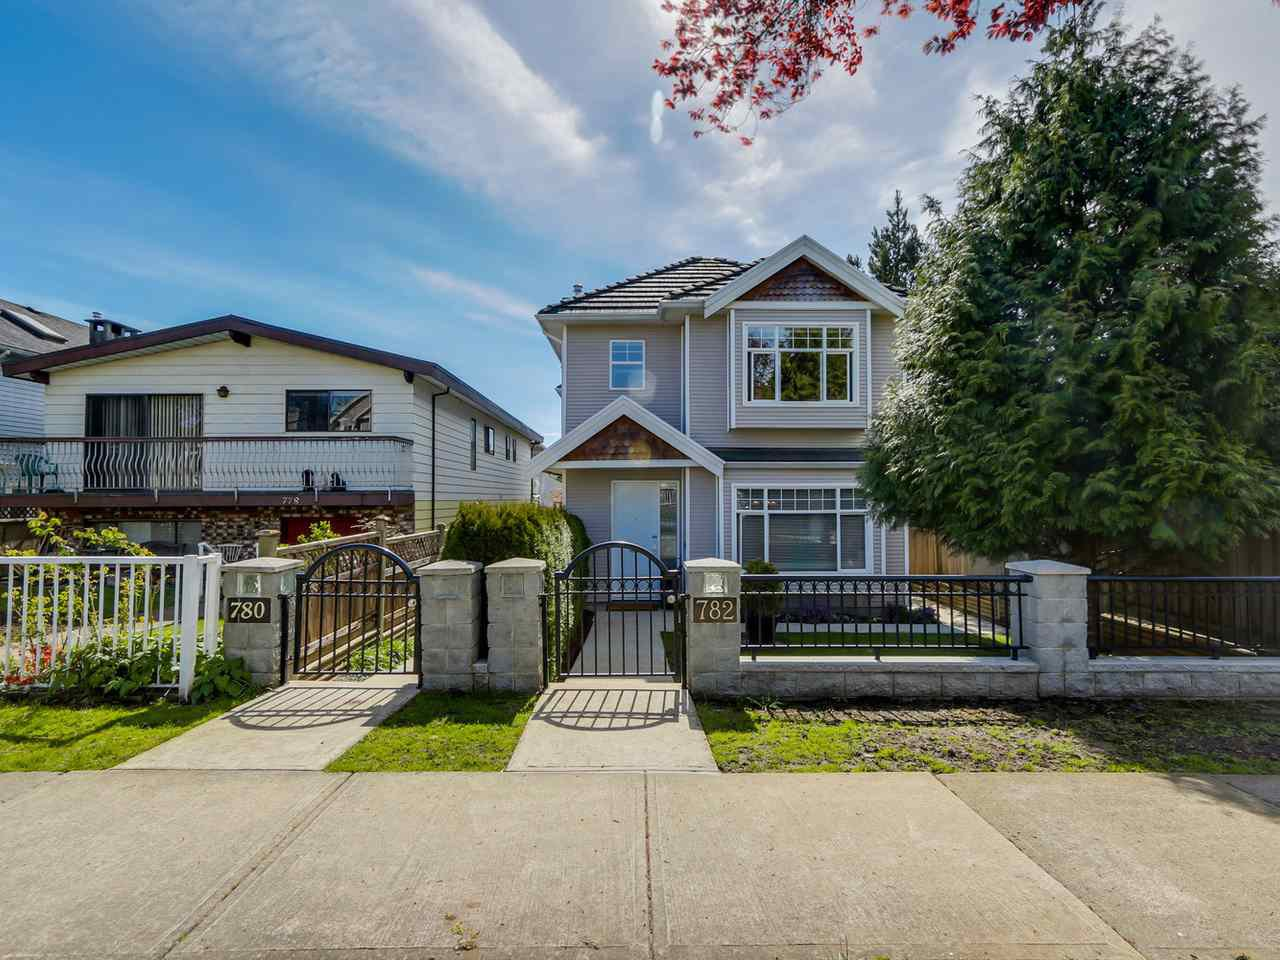 Main Photo: 782 W 69TH AVENUE in Vancouver: Marpole 1/2 Duplex for sale (Vancouver West)  : MLS®# R2052954